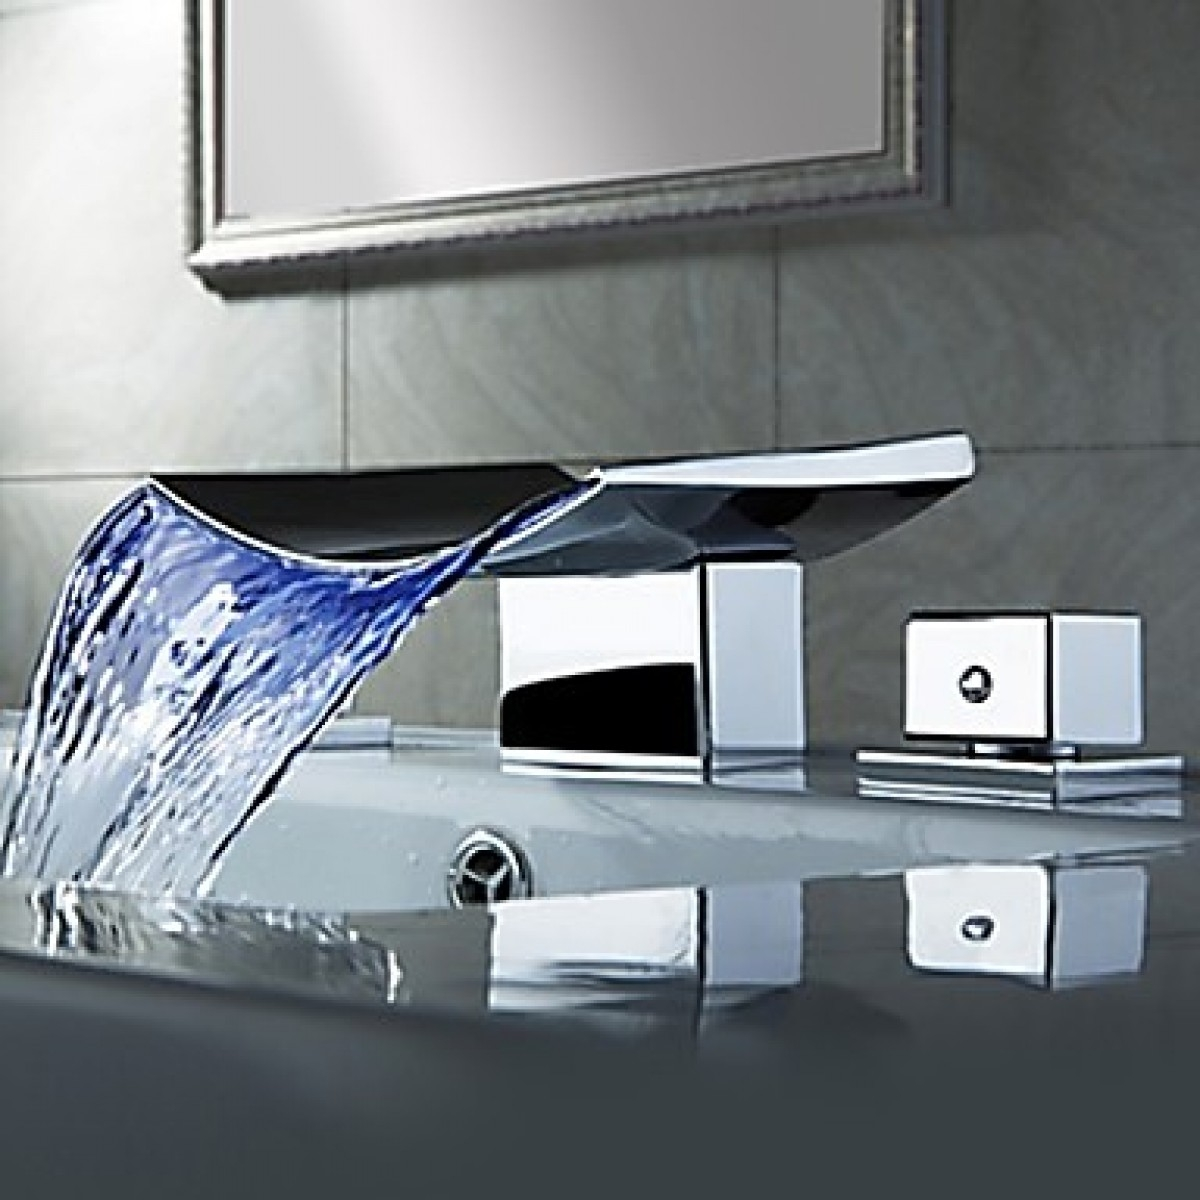 Ideas, led waterfall faucets for vessel sinks led waterfall faucets for vessel sinks bathroom fabulous waterfall faucet for bathroom 1200 x 1200 1  .